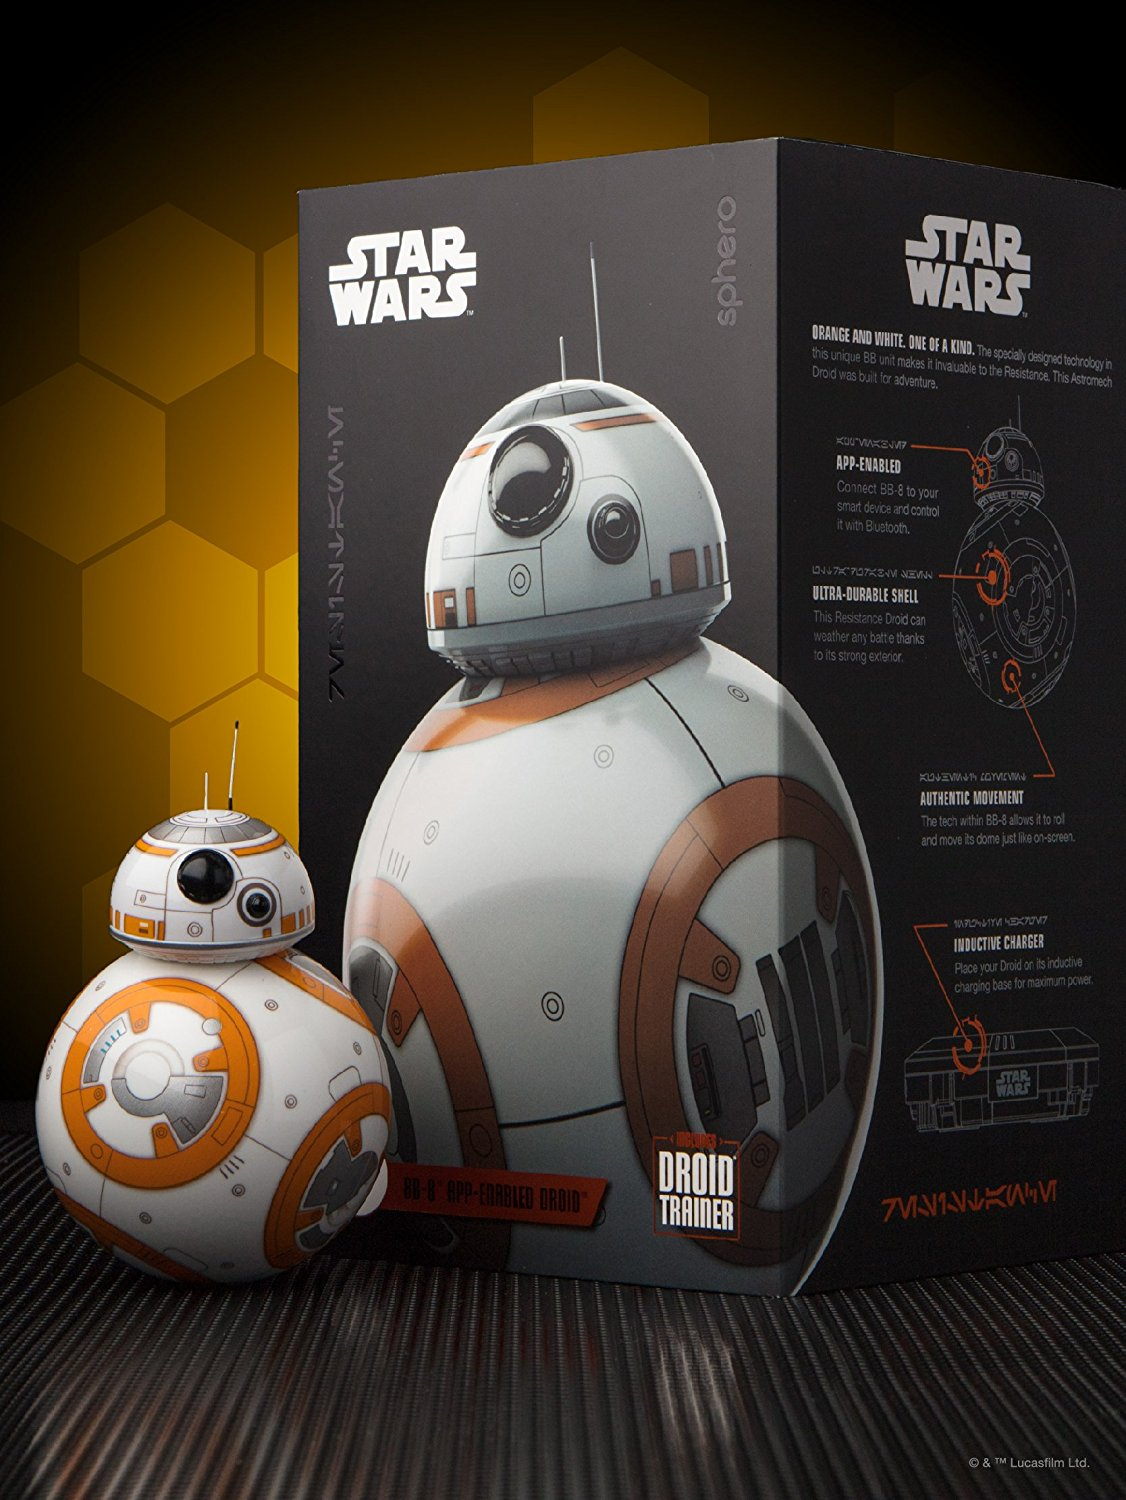 Buy Smart Toys Online In Qatar Shop Electronics Doha Bb8 Star Wars Special Edition Bundle By Sphero App Enabled Droid Sale Bb 8 Tcc Mobiles Games Store Tccq